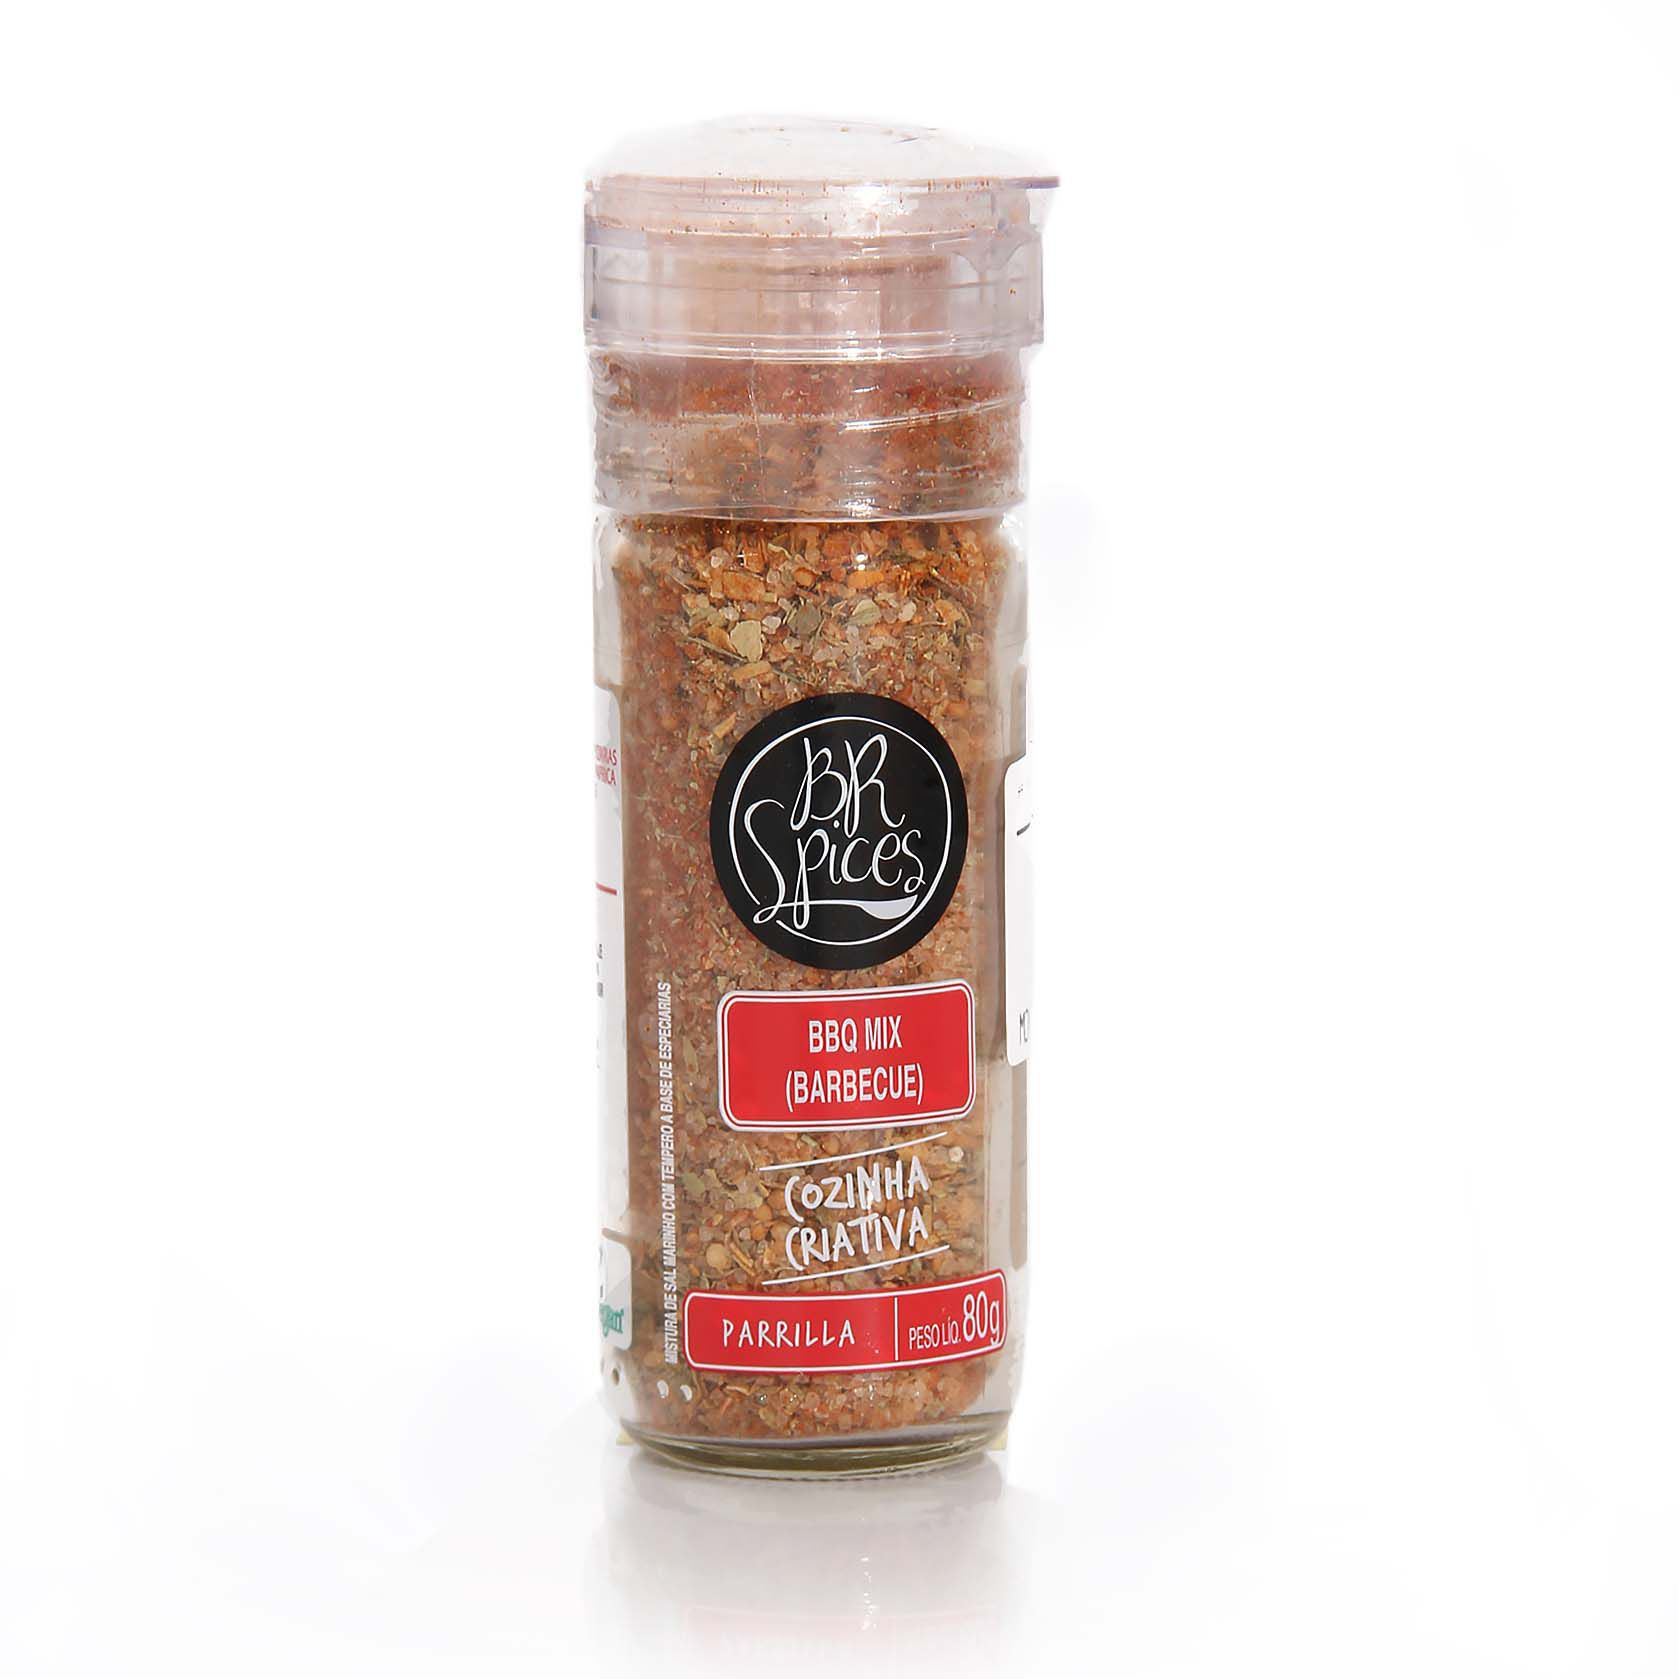 Tempero c/ moedor BR Spices - Mix Barbecue 80gr